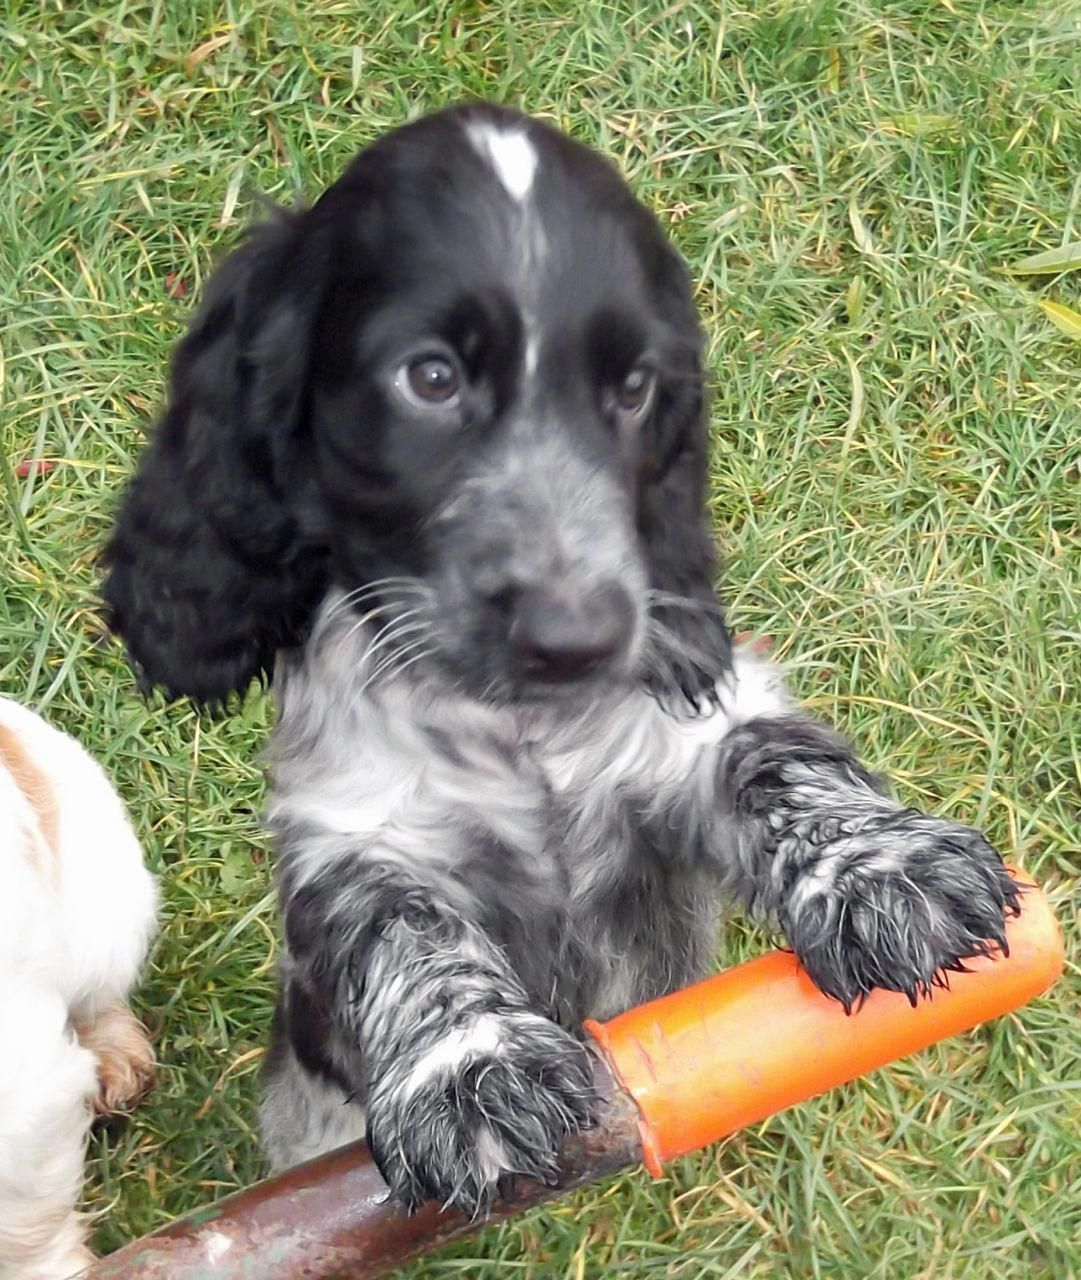 Cocer Spaniels Types With Pictures Show Type Cocker Spaniel Puppy Gainsborough Lincolnshire Cocker Spaniel Puppies Spaniel Puppies Cocker Spaniel